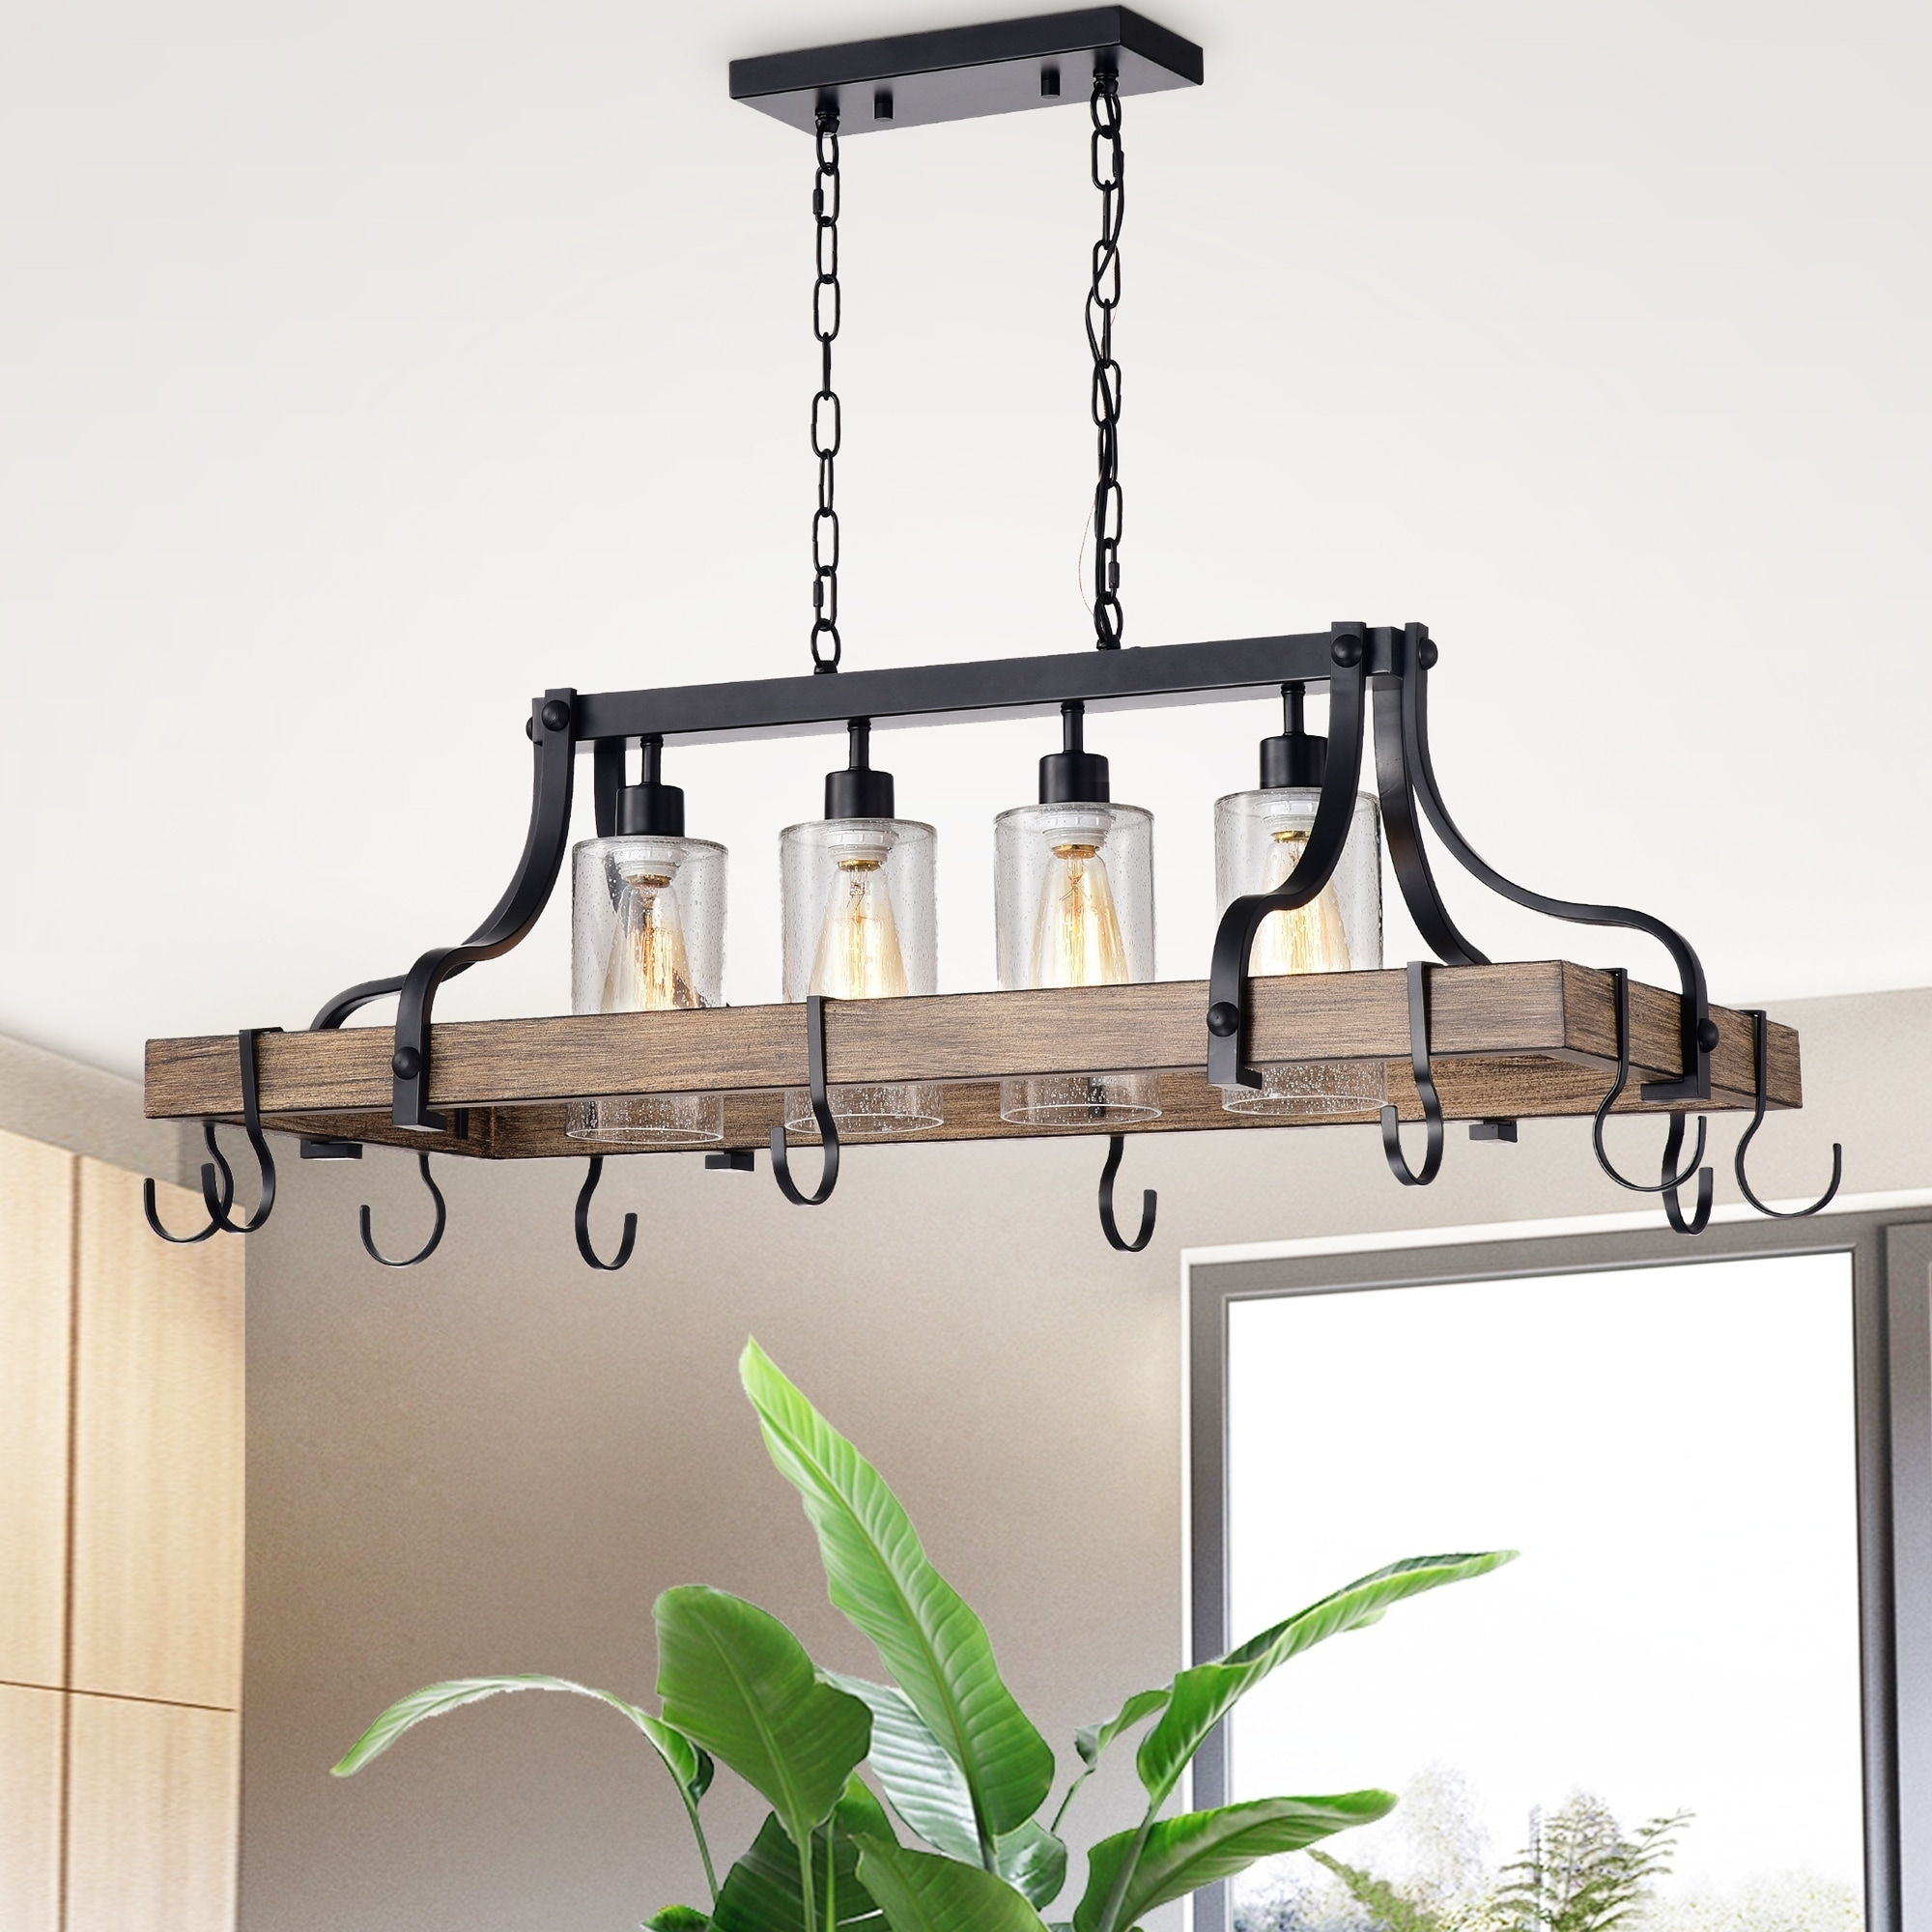 Blakes 4 Light Faux Wood Metal Kitchen Island Chandelier With Pot Pan Hooks And Seeded Gl Shades